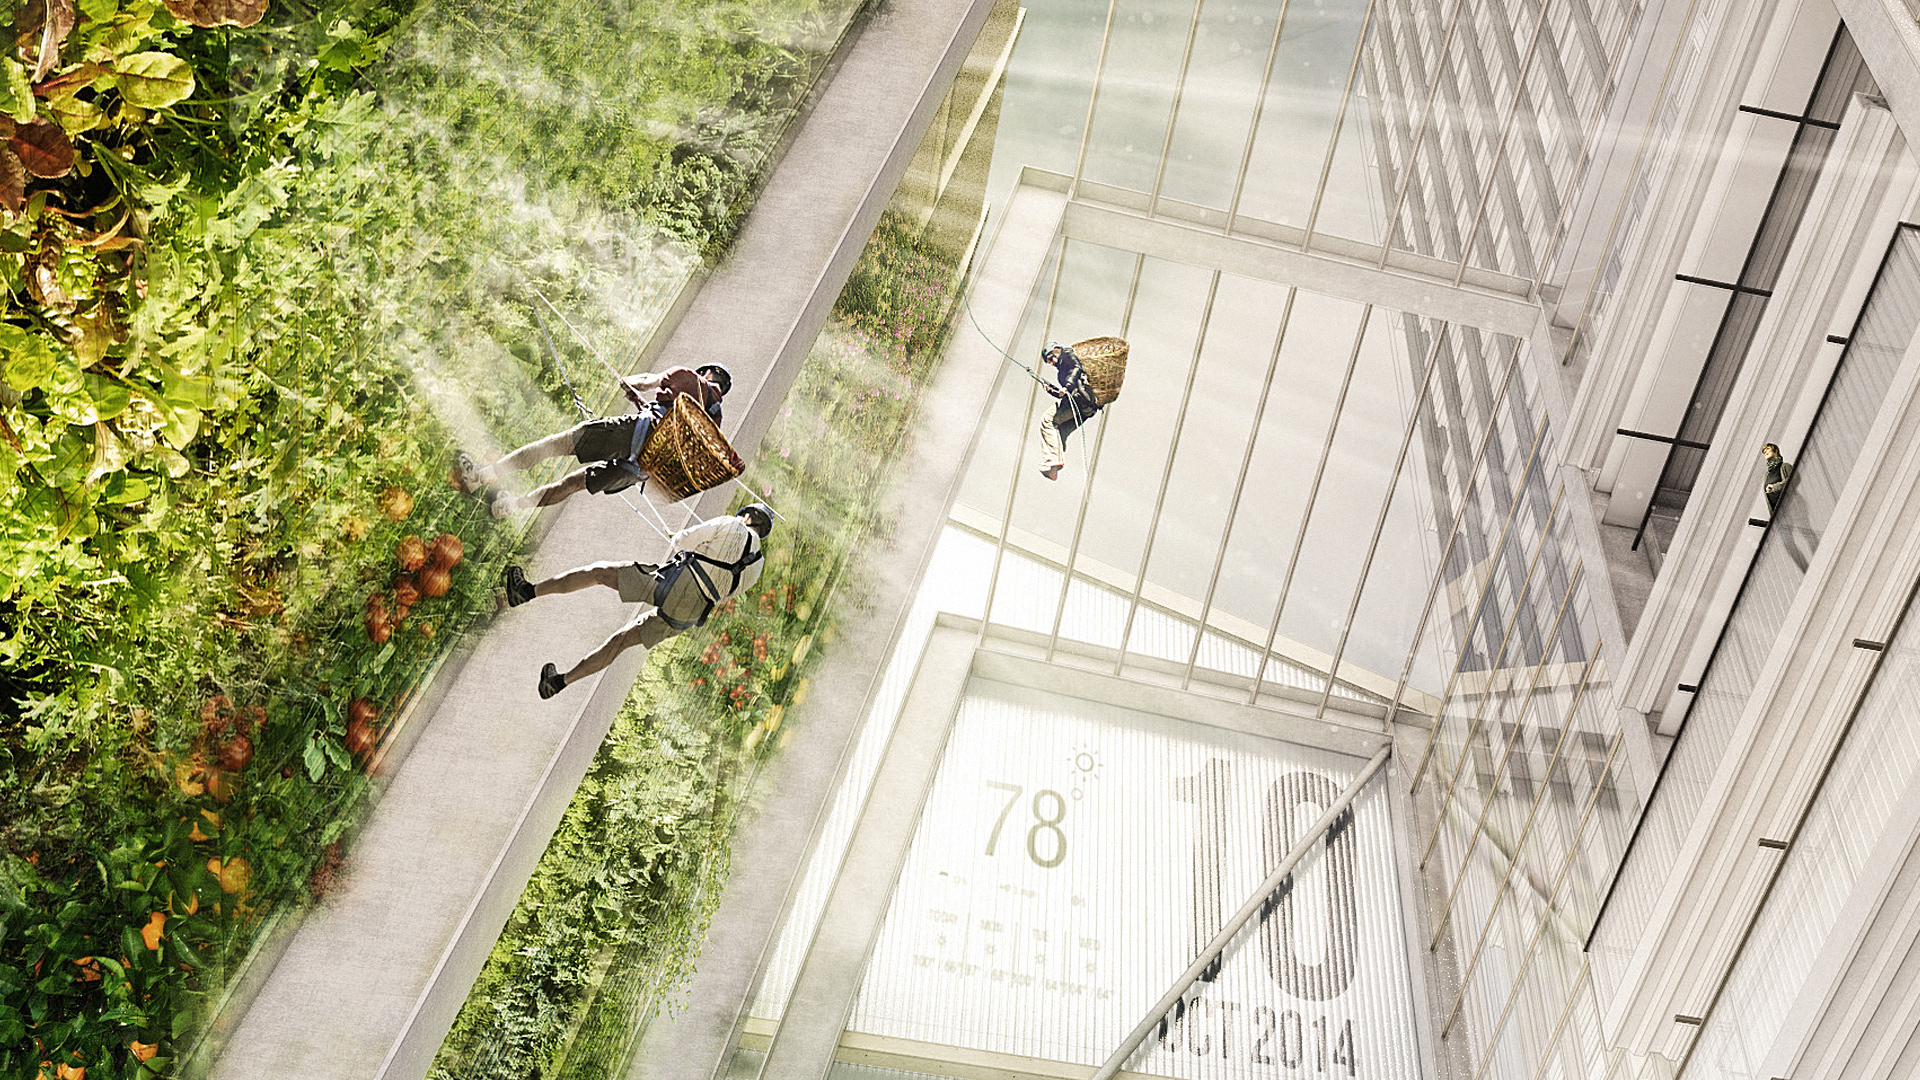 In The Office Of The Future, You'll Scale A Climbing Wall To Harvest Your Lunch